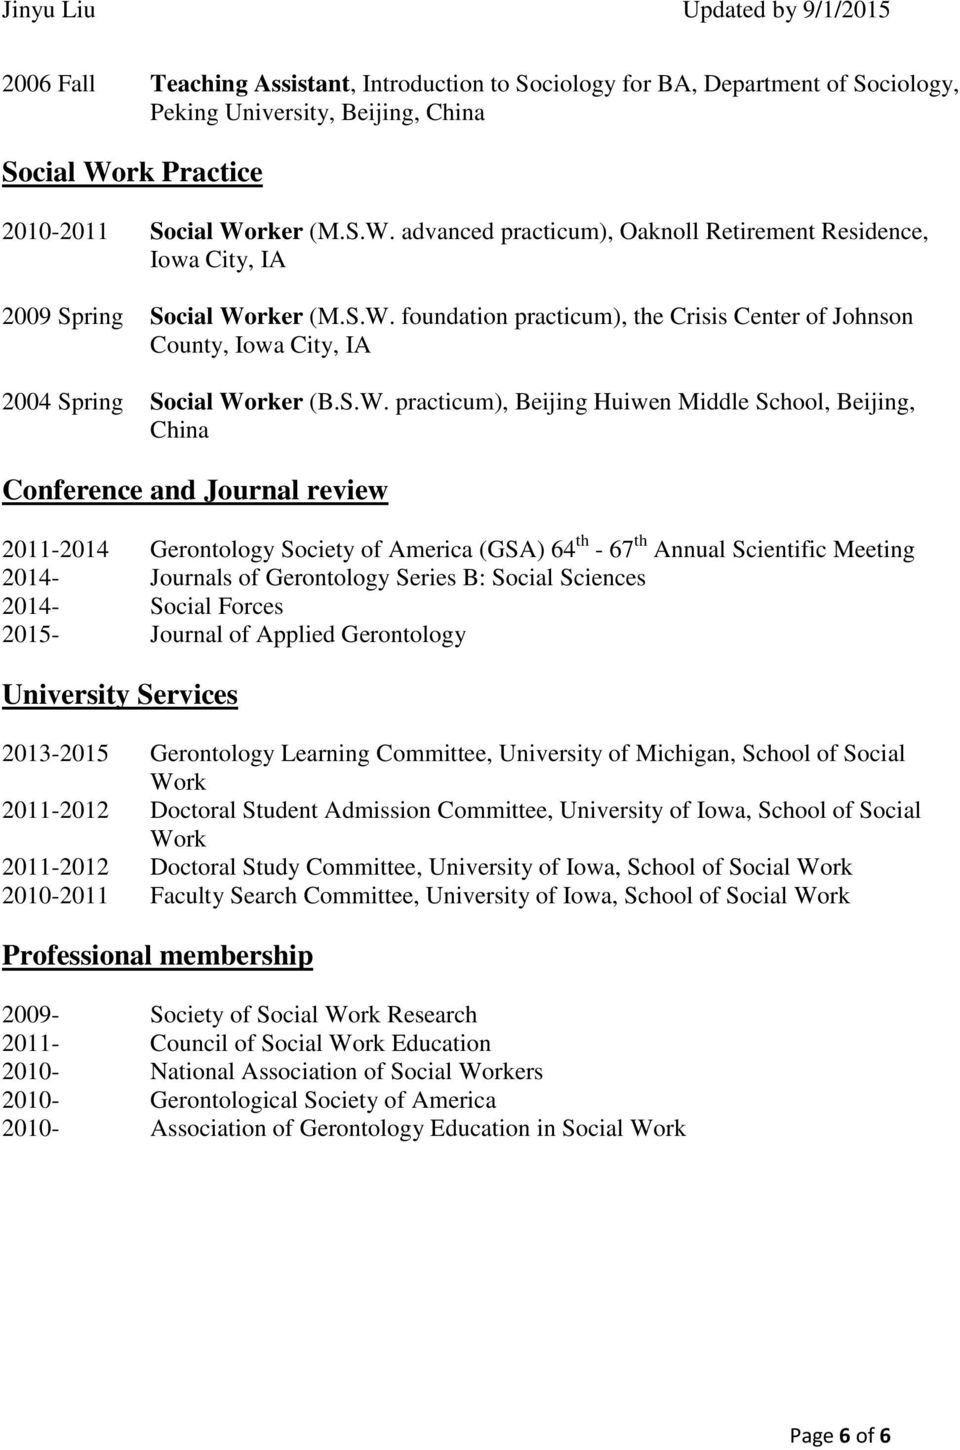 S.W. practicum), Beijing Huiwen Middle School, Beijing, China Conference and Journal review 2011-2014 Gerontology Society of America (GSA) 64 th - 67 th Annual Scientific Meeting 2014- Journals of